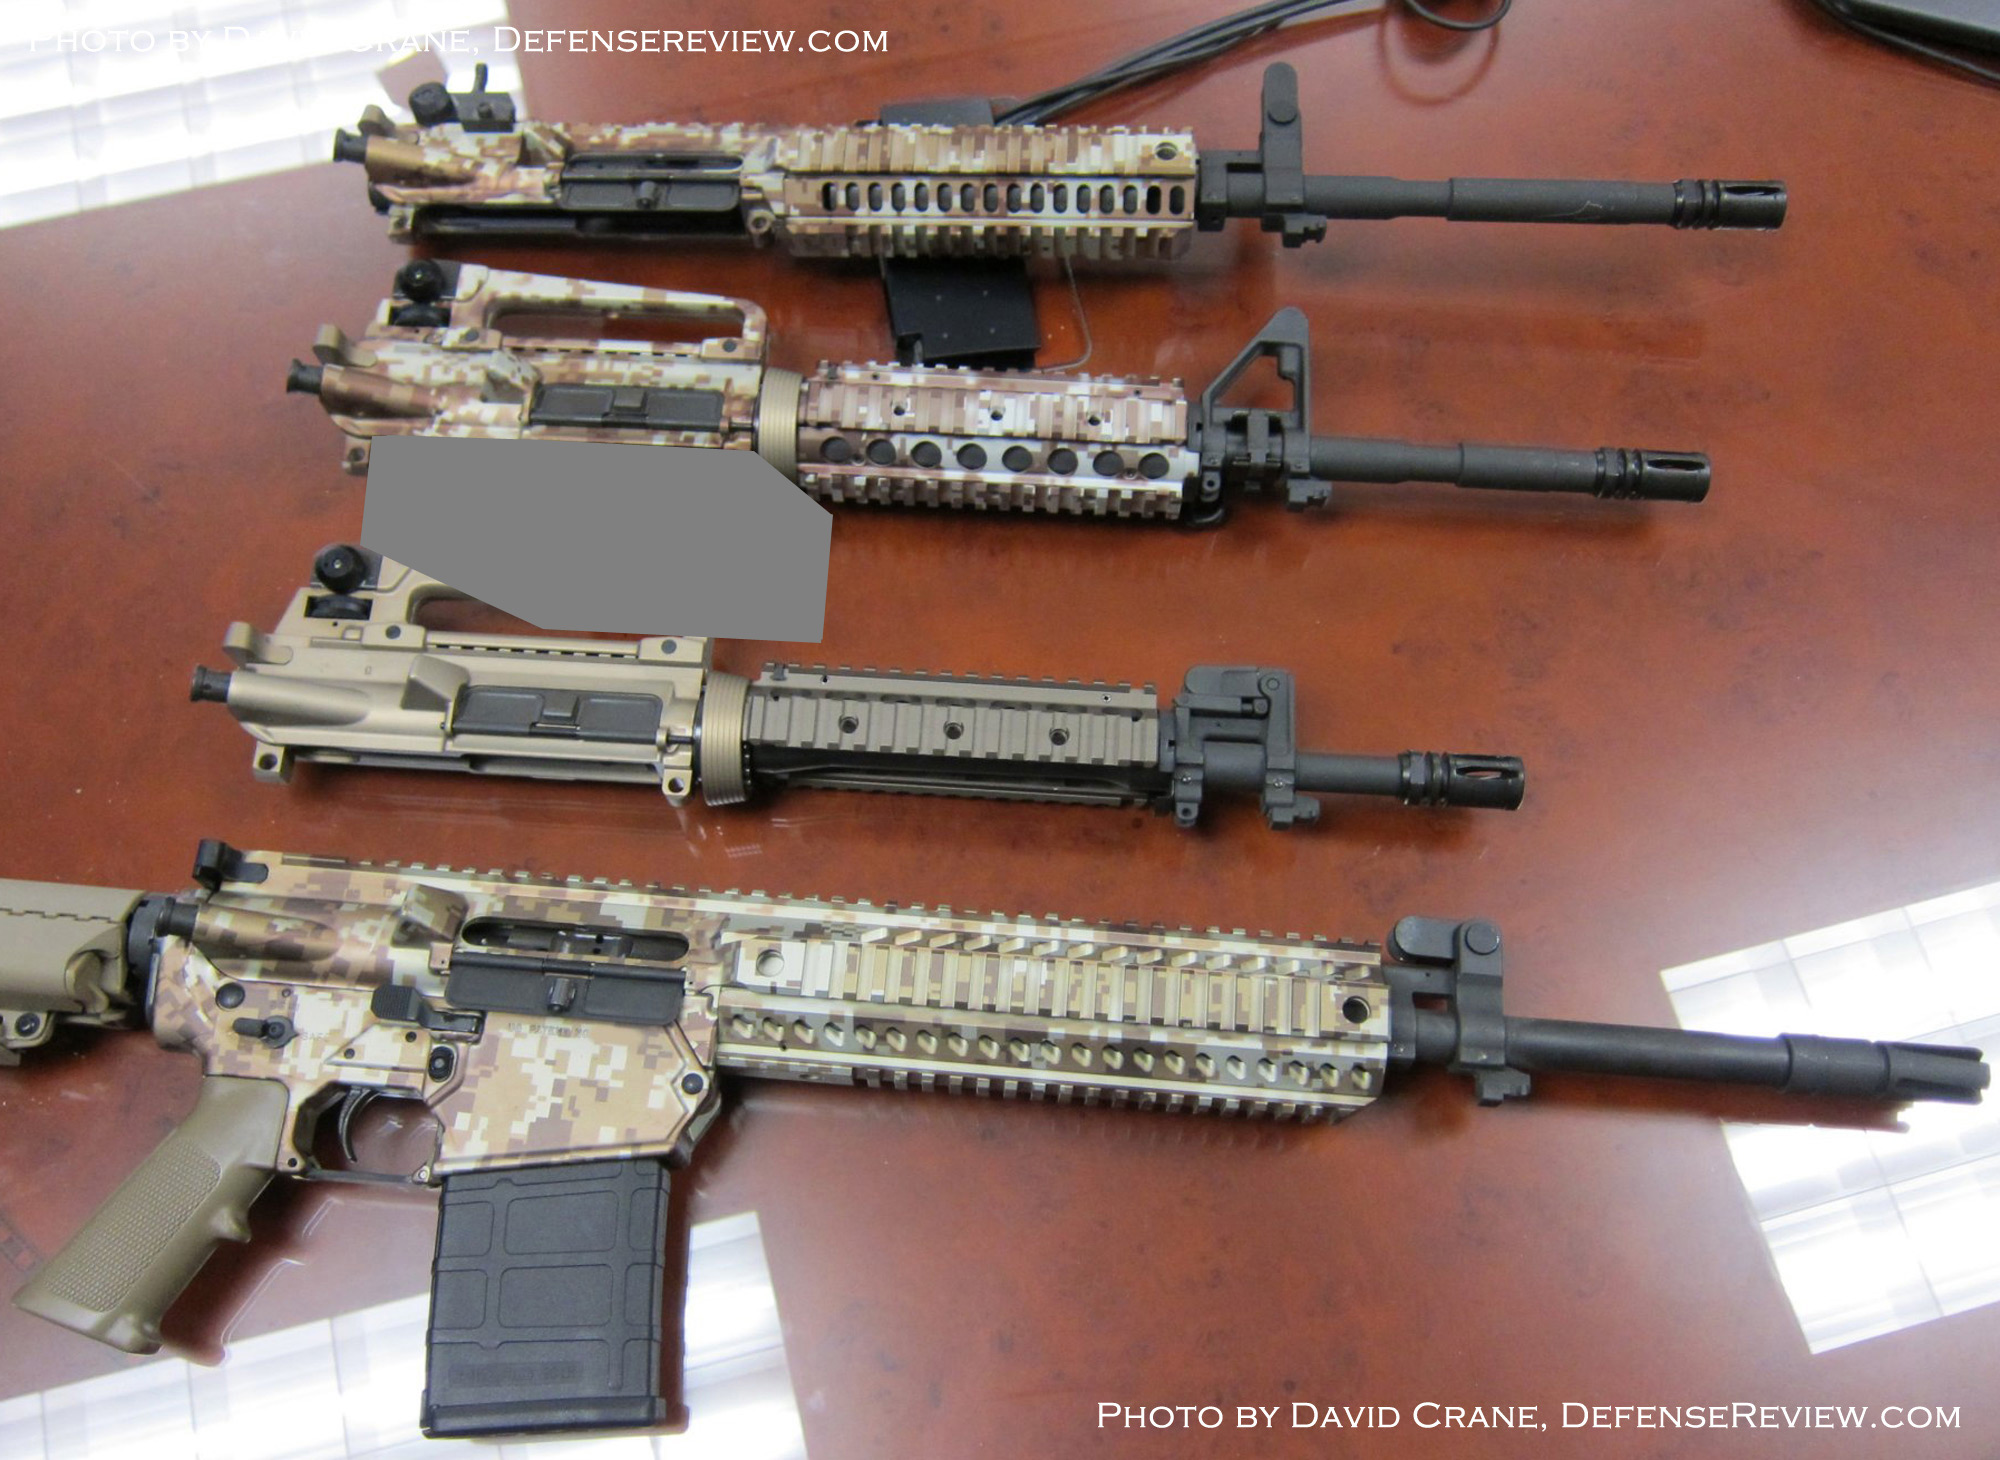 Colt CM901 AR Carbine SBR 7.62mm 28 Sanitized W <!  :en  >DR Exclusive First Look!: SCAR Who? Meet the Colt Modular Carbine (CMC) Model CM901 Multi Caliber 7.62mm NATO Battle Rifle / 5.56mm NATO Assault Rifle for U.S. Military Special Operations Forces (SOF) and General Infantry Forces (GIF). DefenseReview (DR) Reports (Photos and Video!) <!  :  >